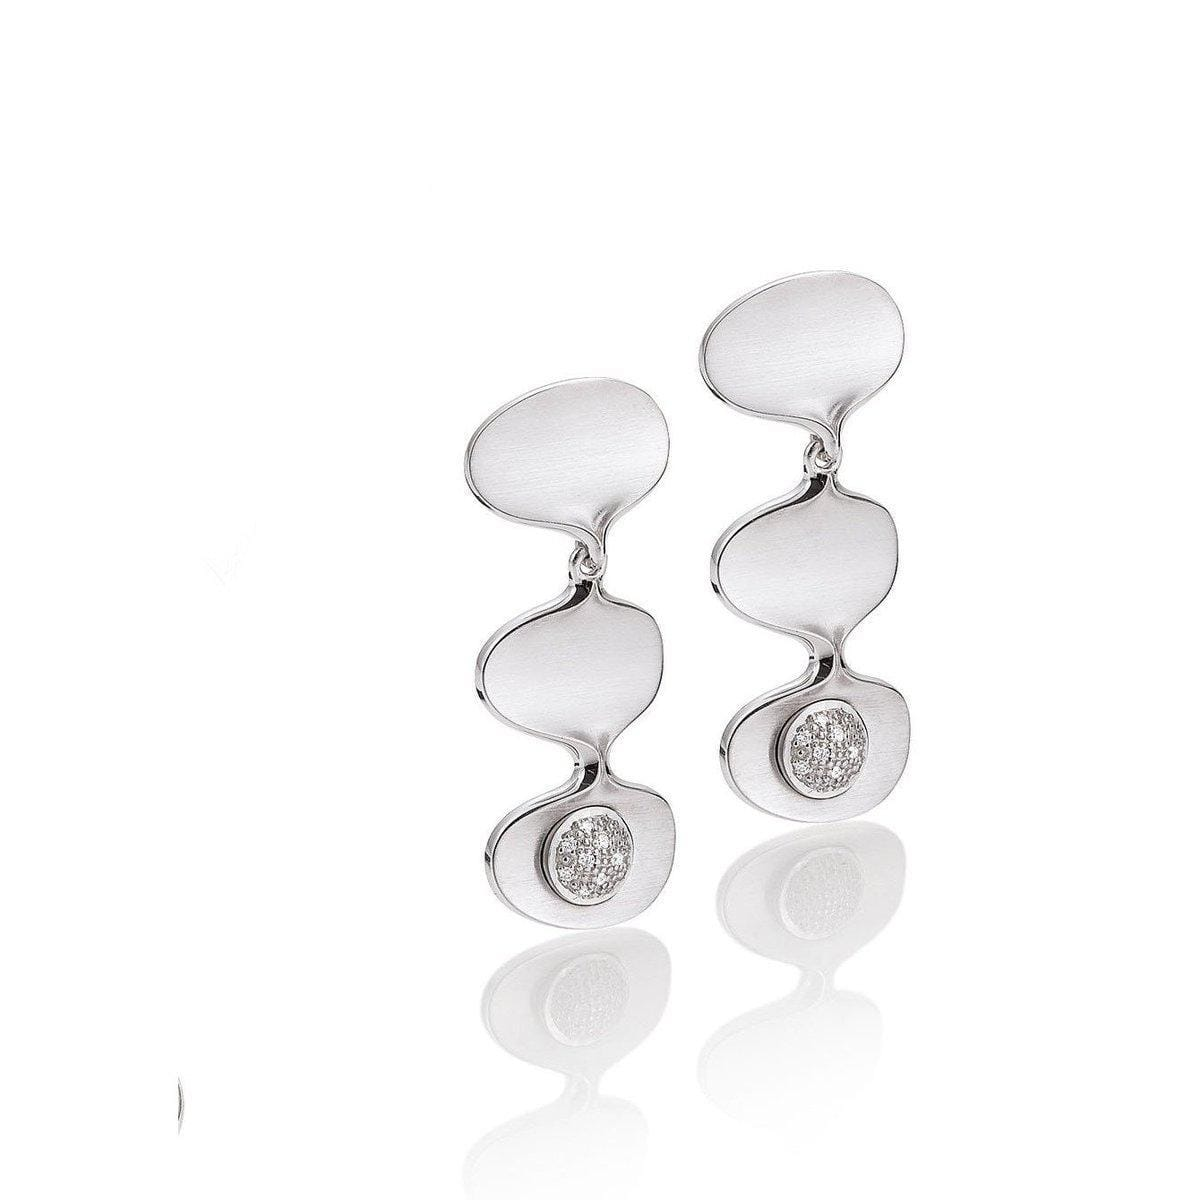 Rhodium Plated Sterling Silver Diamond Earrings - 11/03010-Breuning-Renee Taylor Gallery